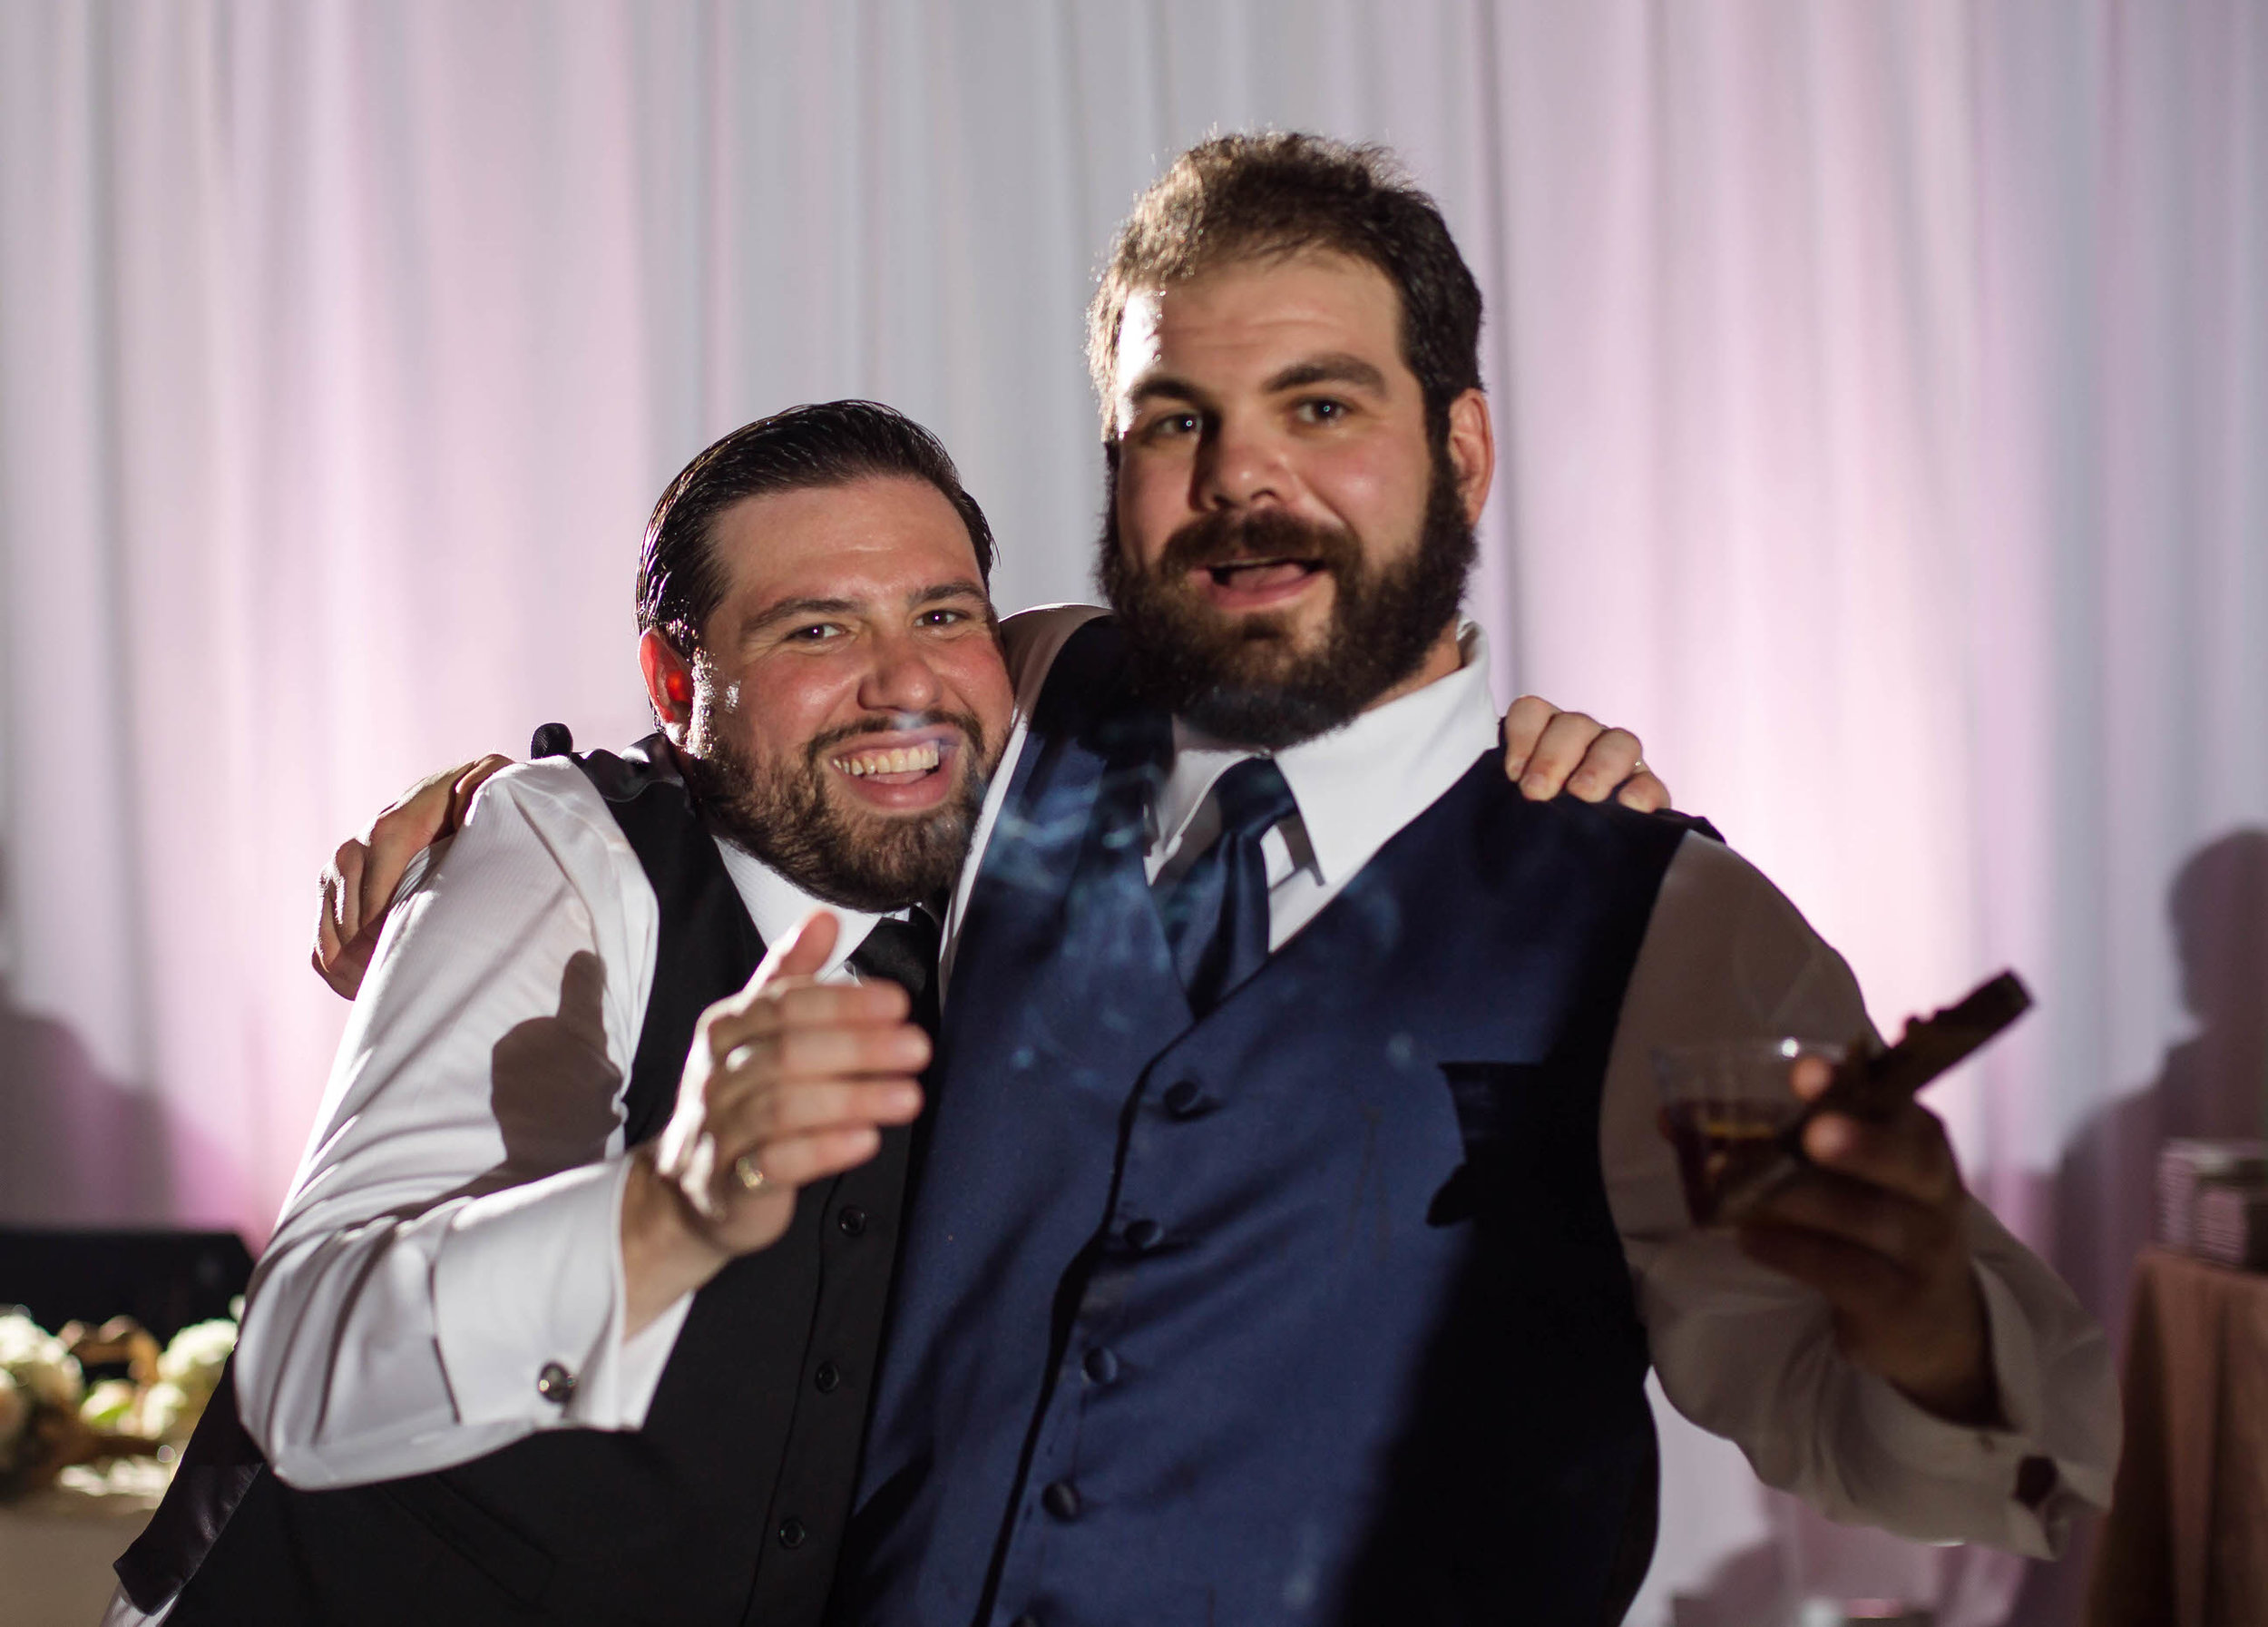 groom_friend_moments_cigar_fun_wedding_tiny_house_photo.jpg